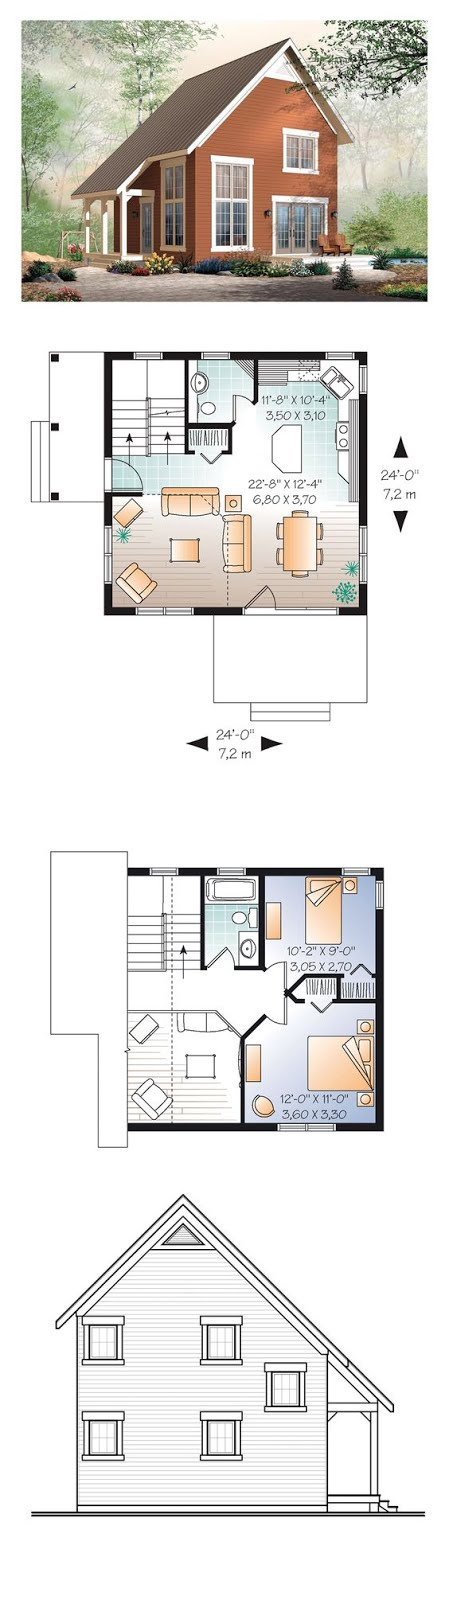 Amazing Floor plan is basically depends on the size of the house us lot